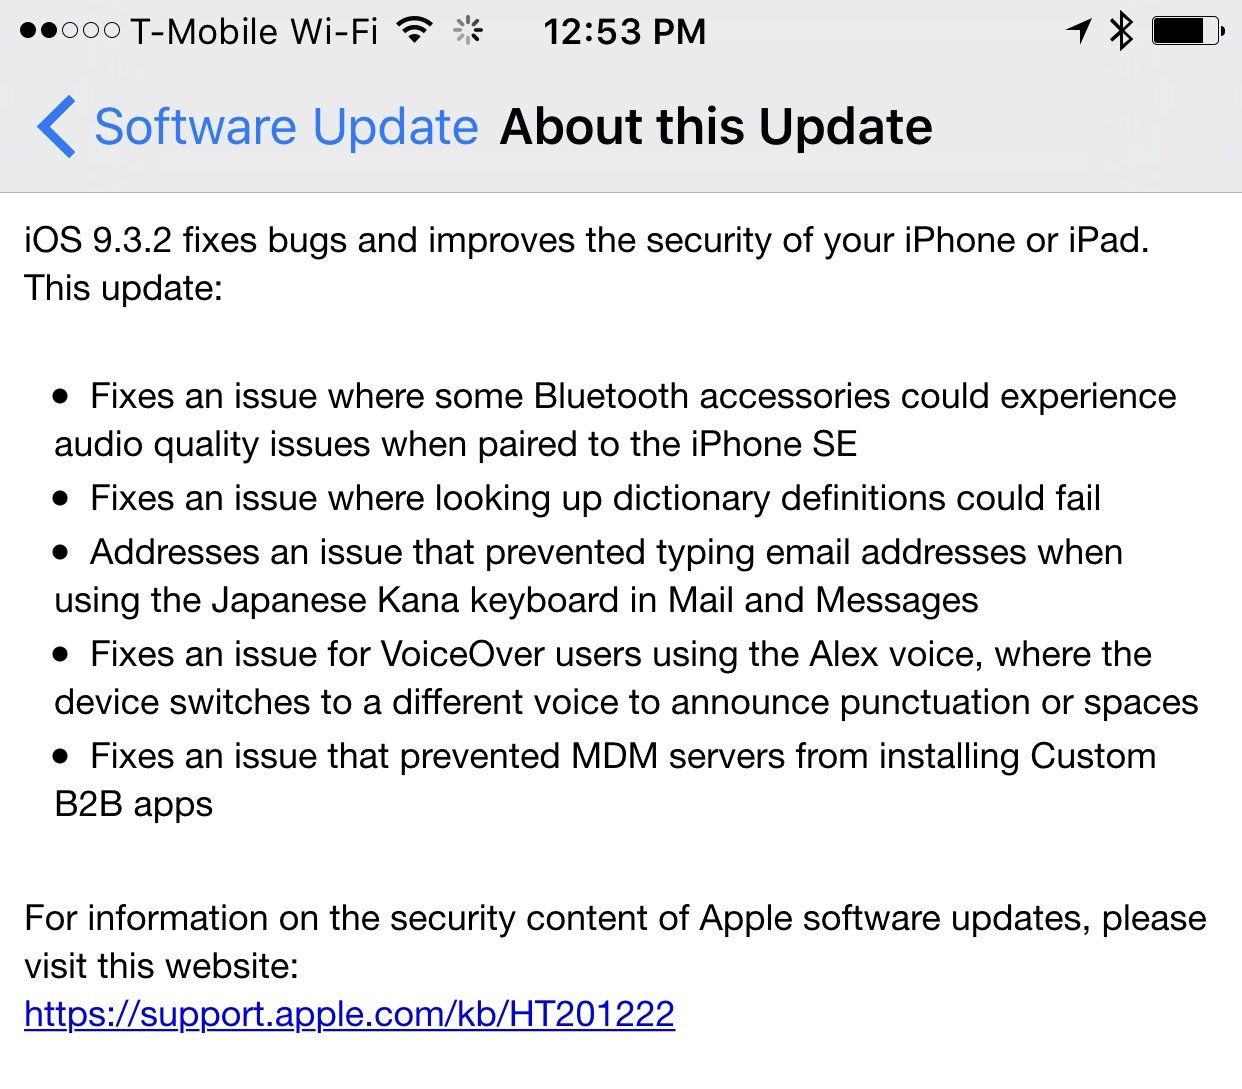 Update notes for iOS 9.3.2